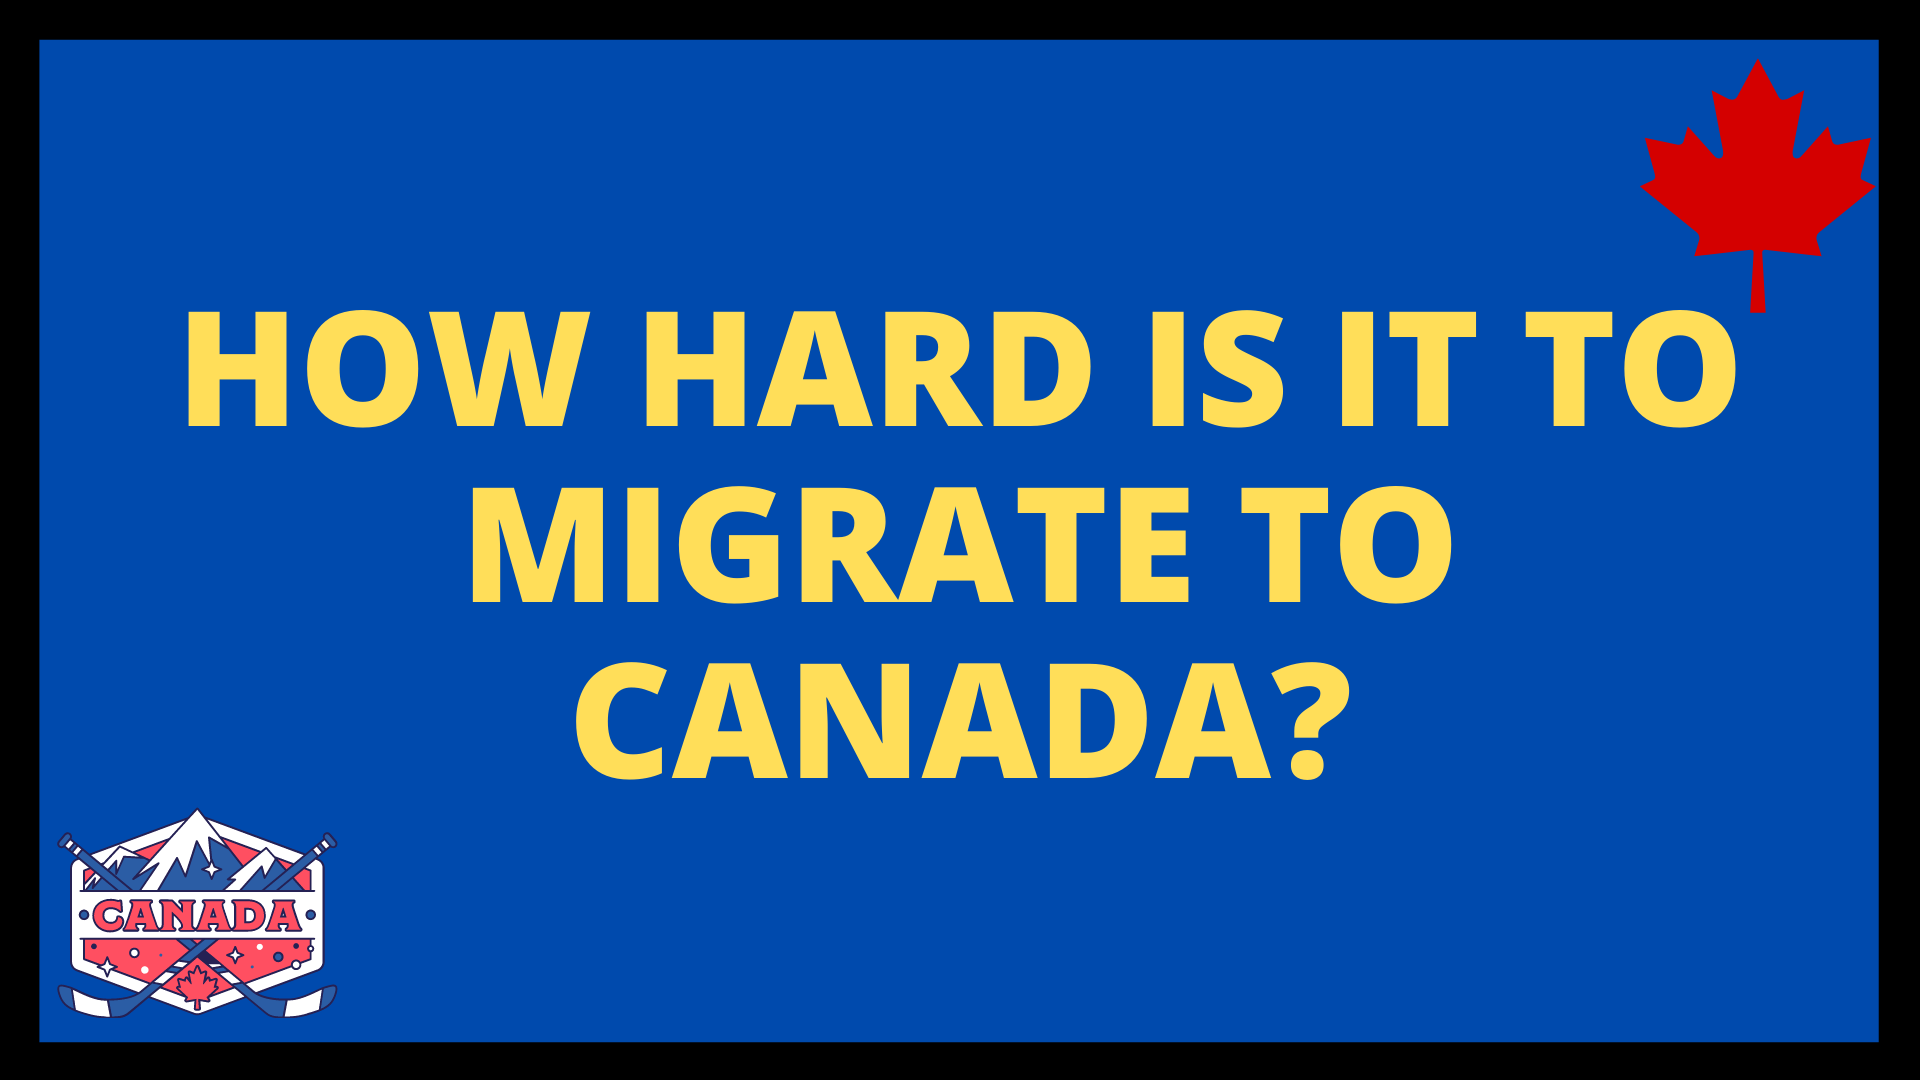 How hard is it to migrate to Canada?